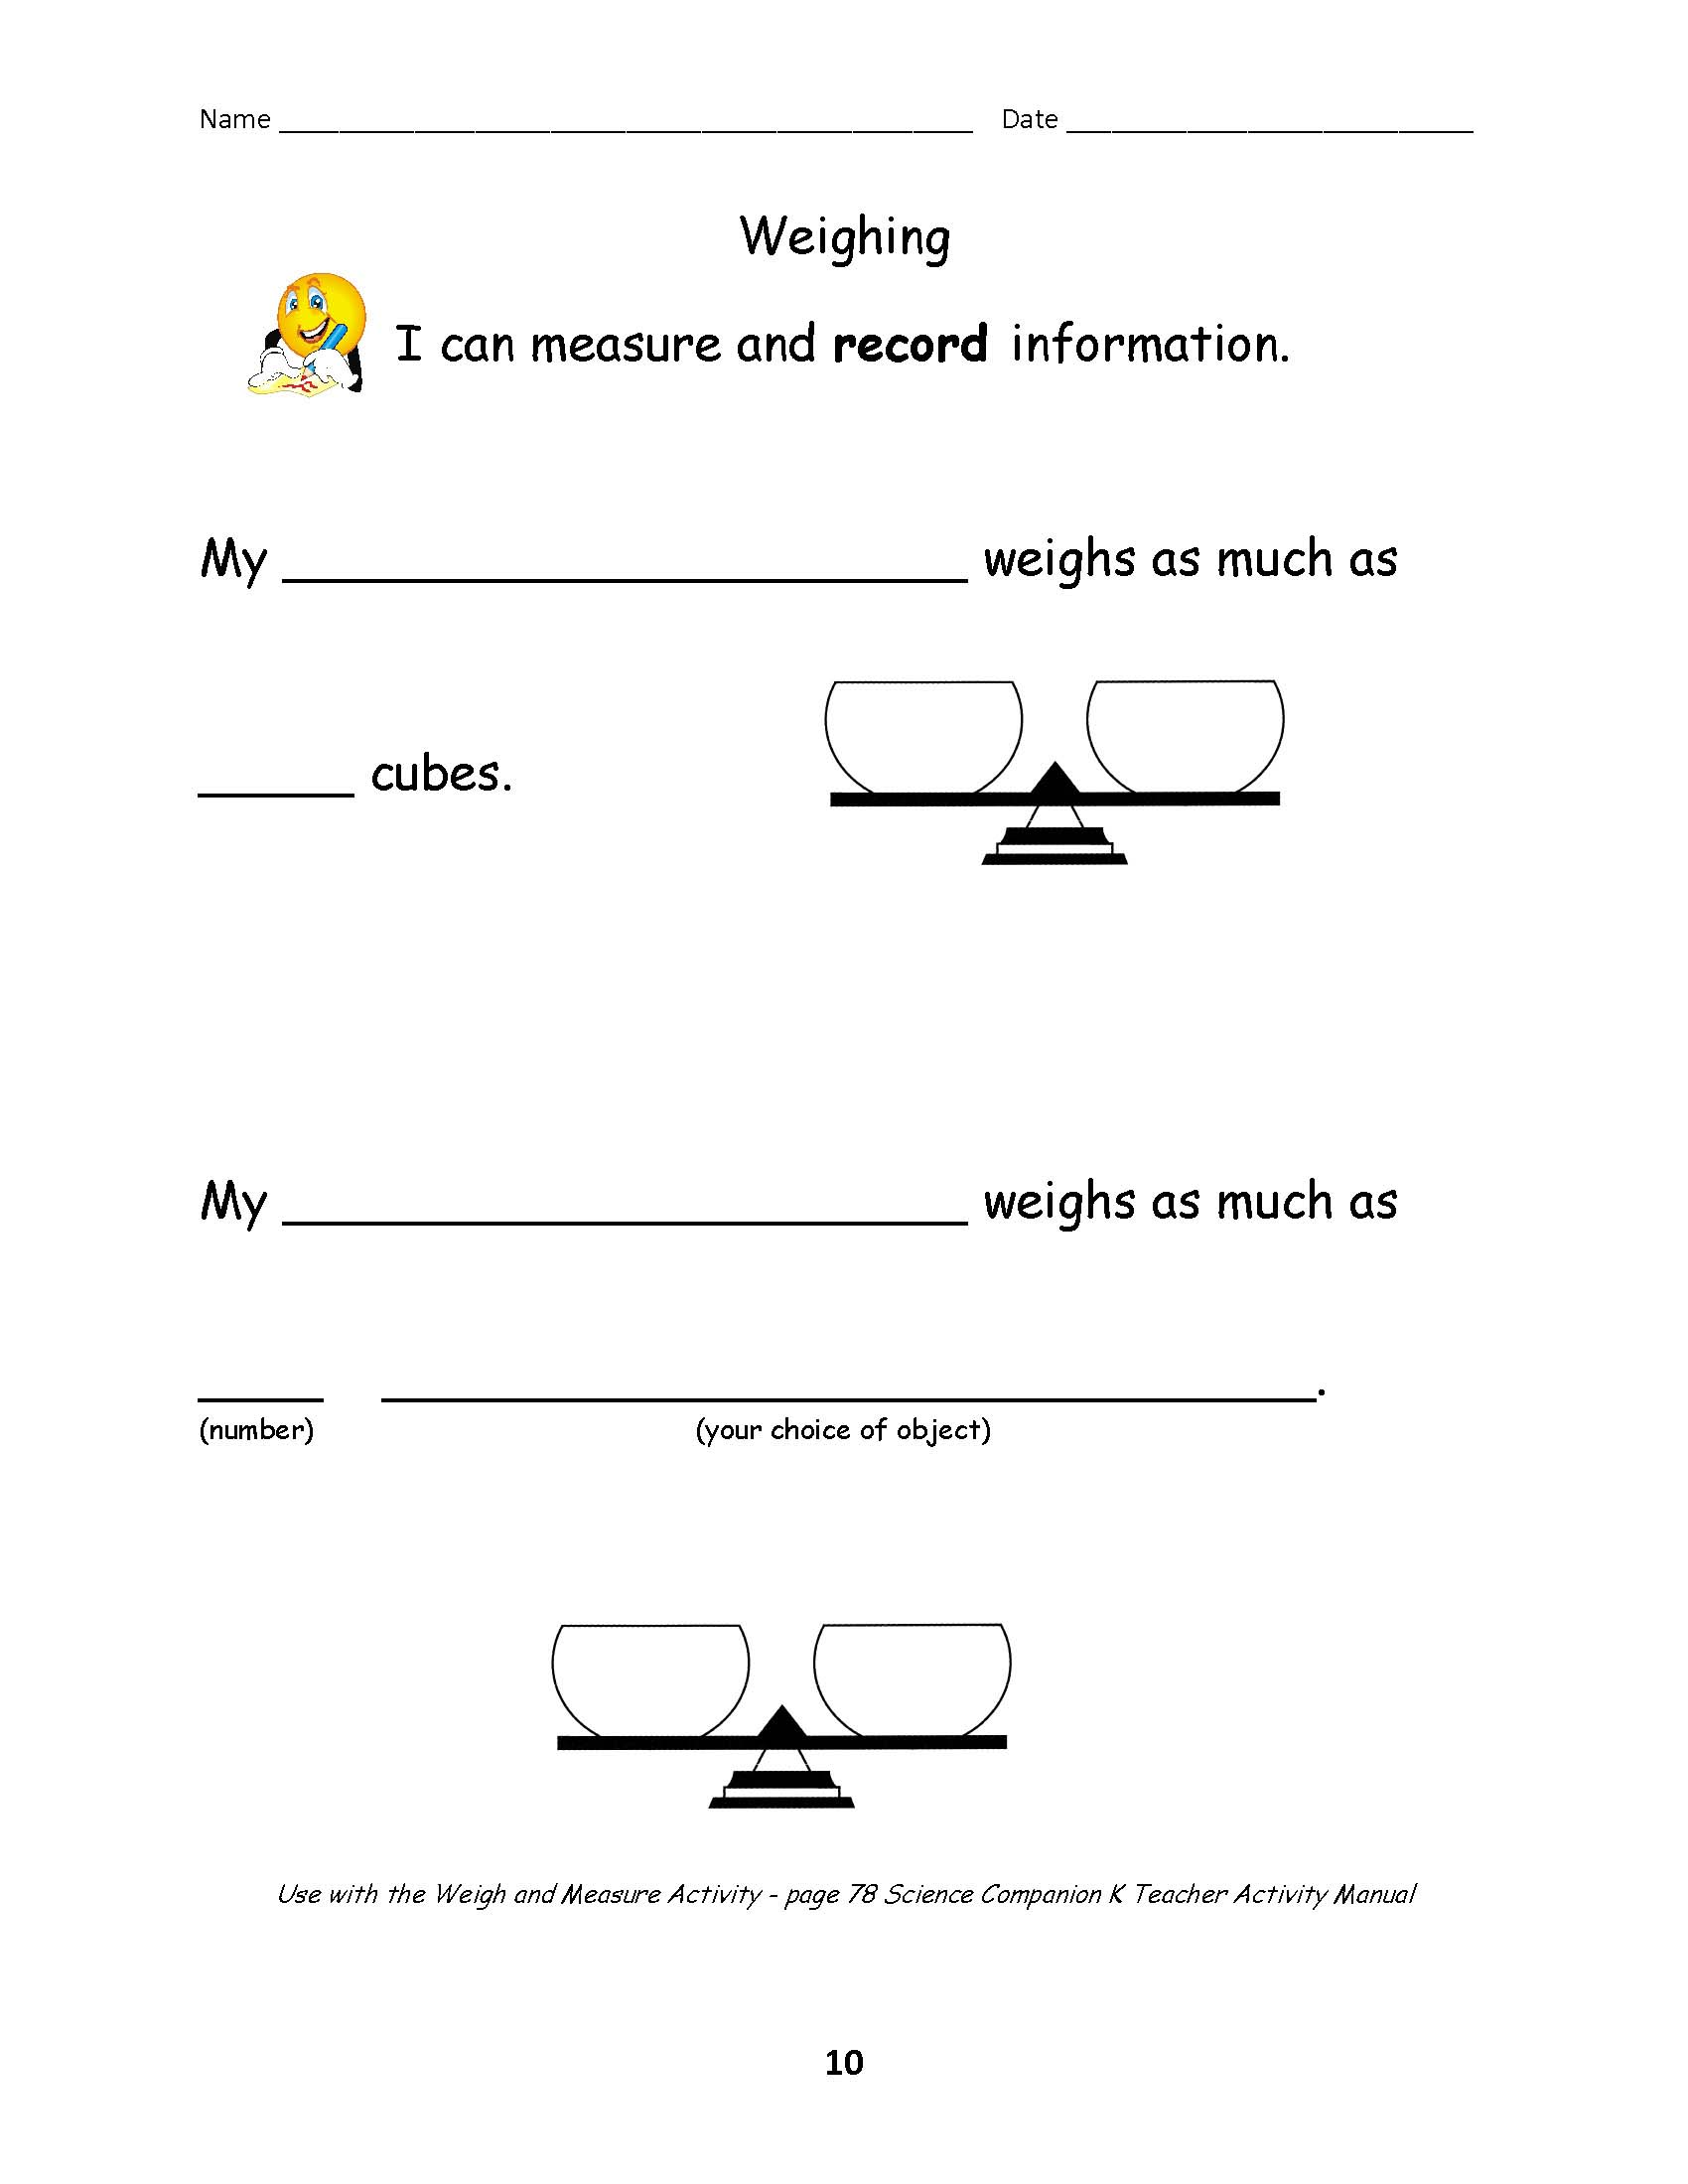 13 Best Images Of Desert Activity Worksheets